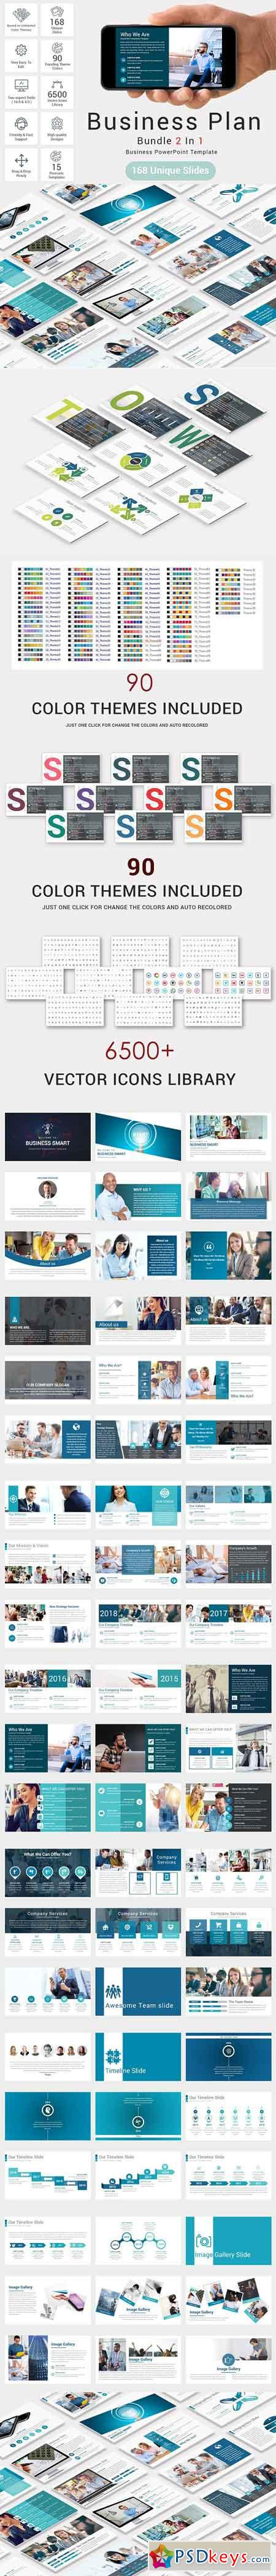 Bundle 2 In 1 Business Plan Template 2636526